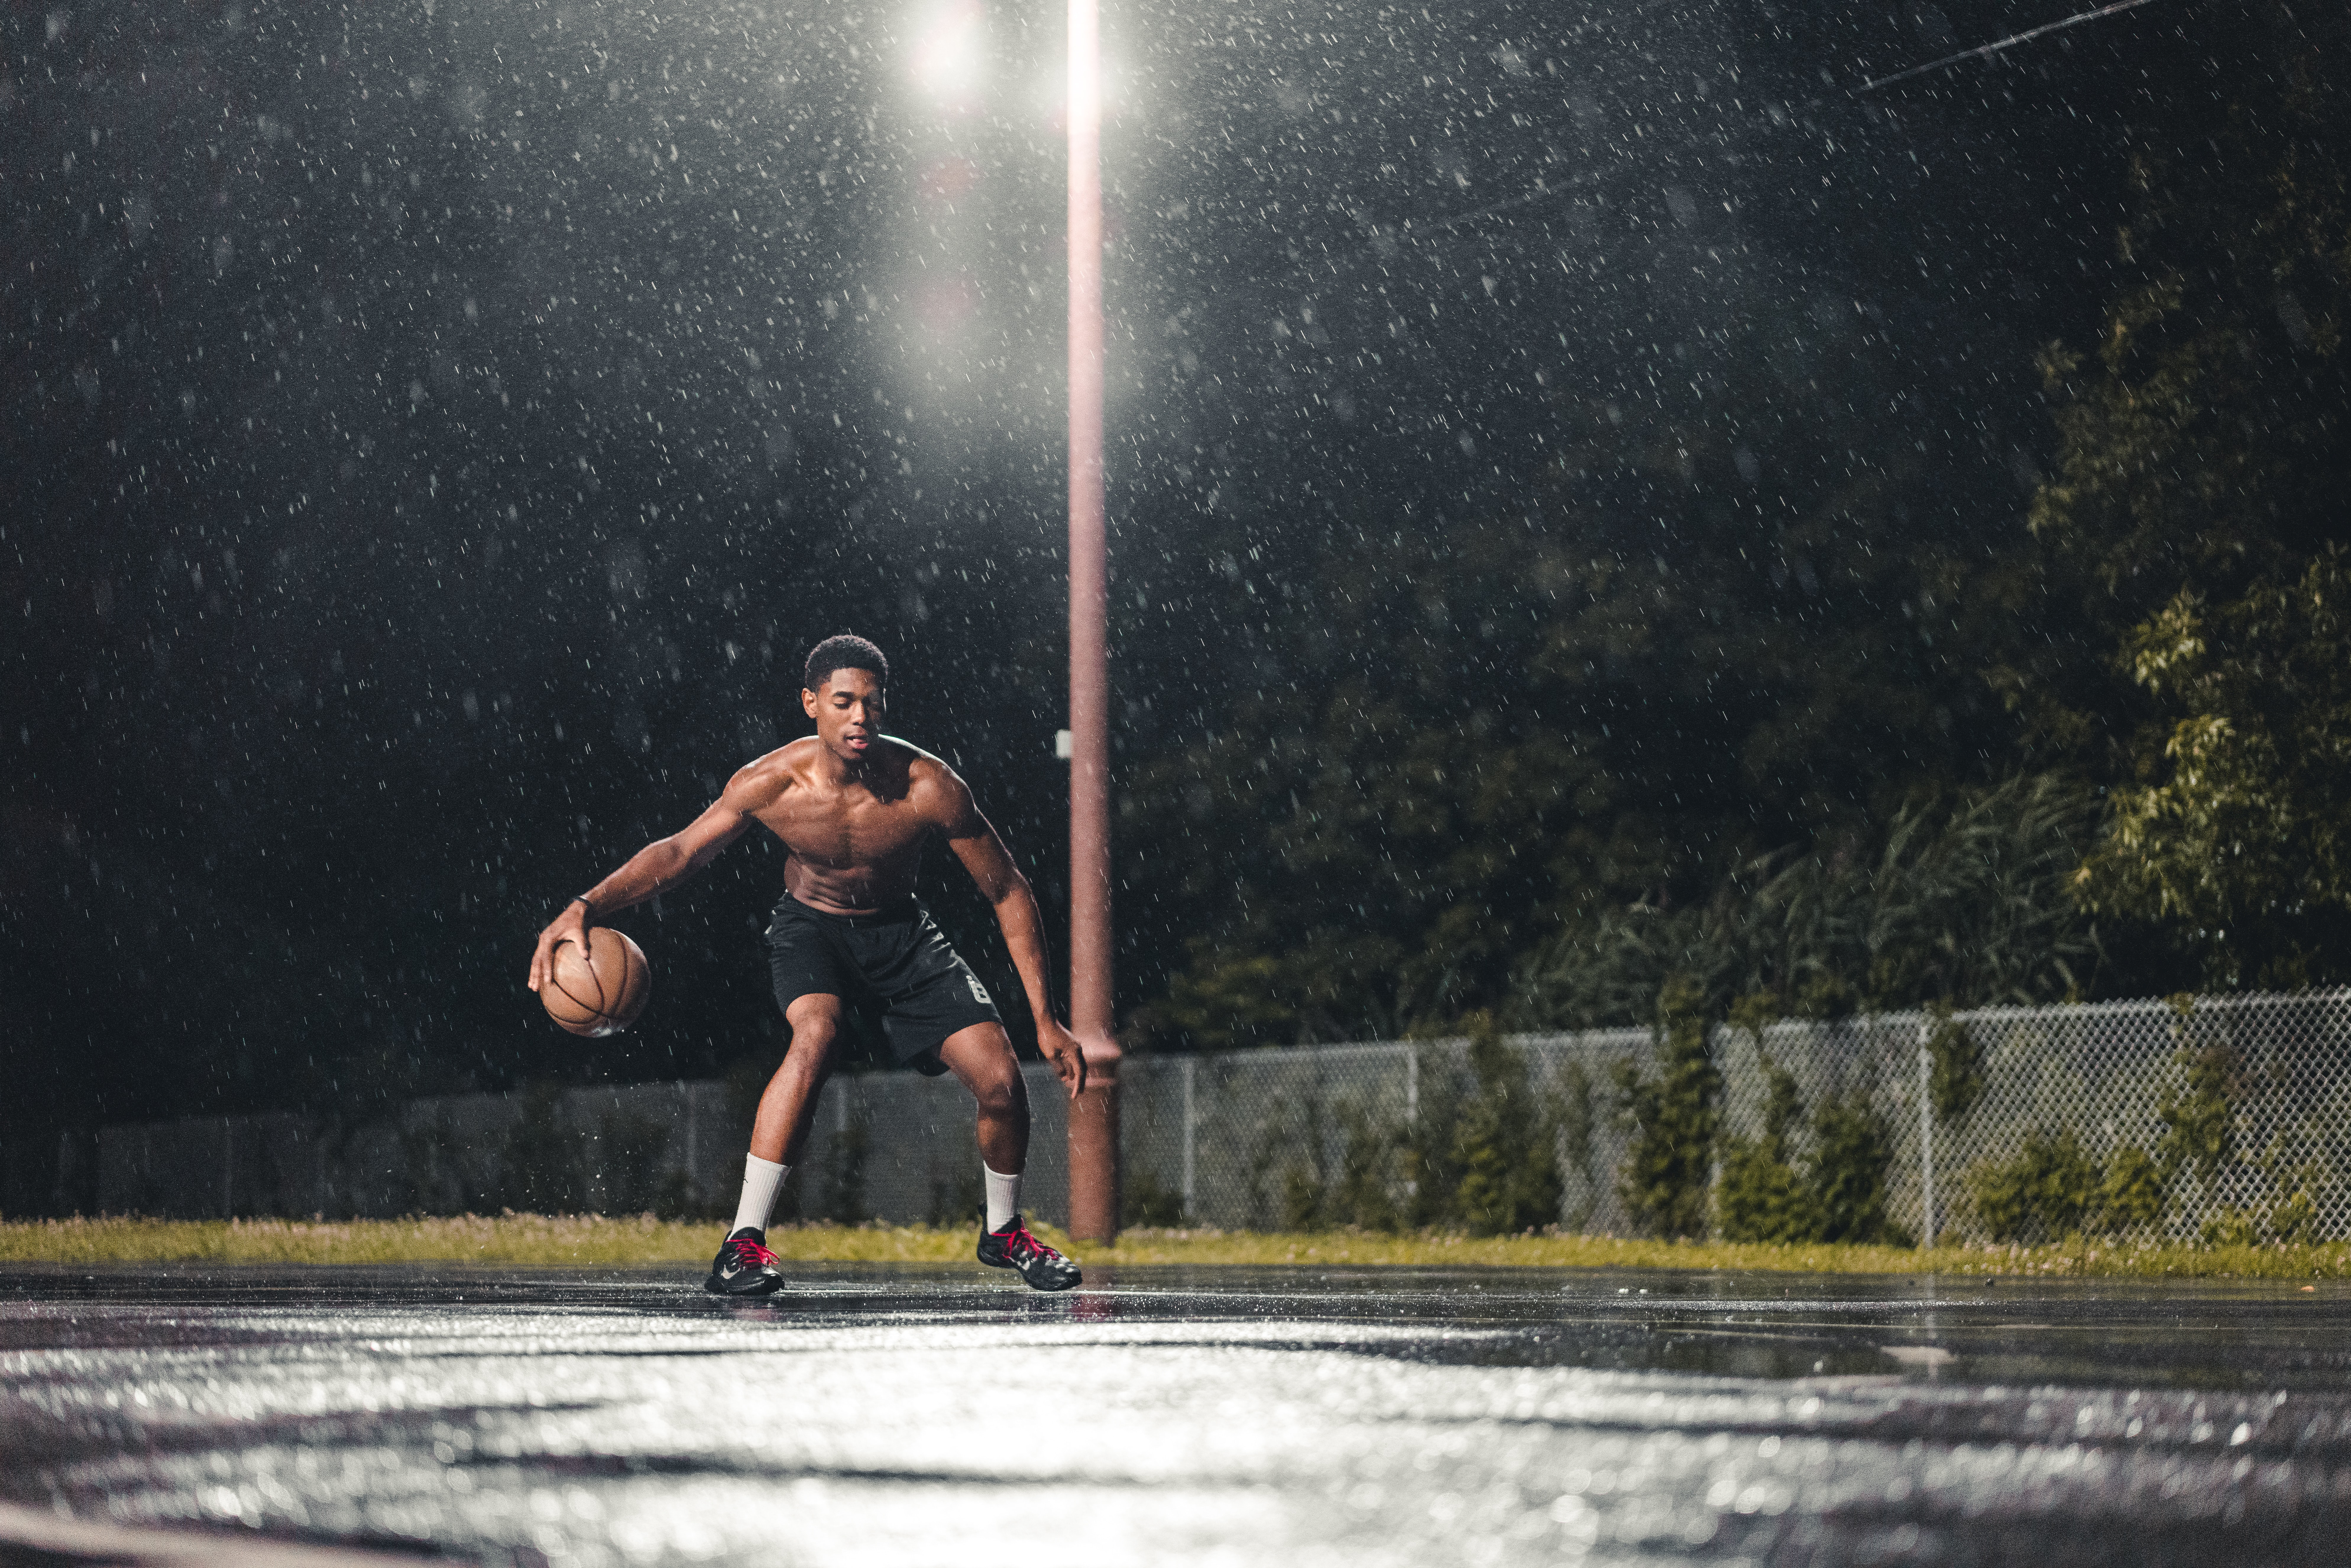 Athletic man playing basketball alone on a court in the rain